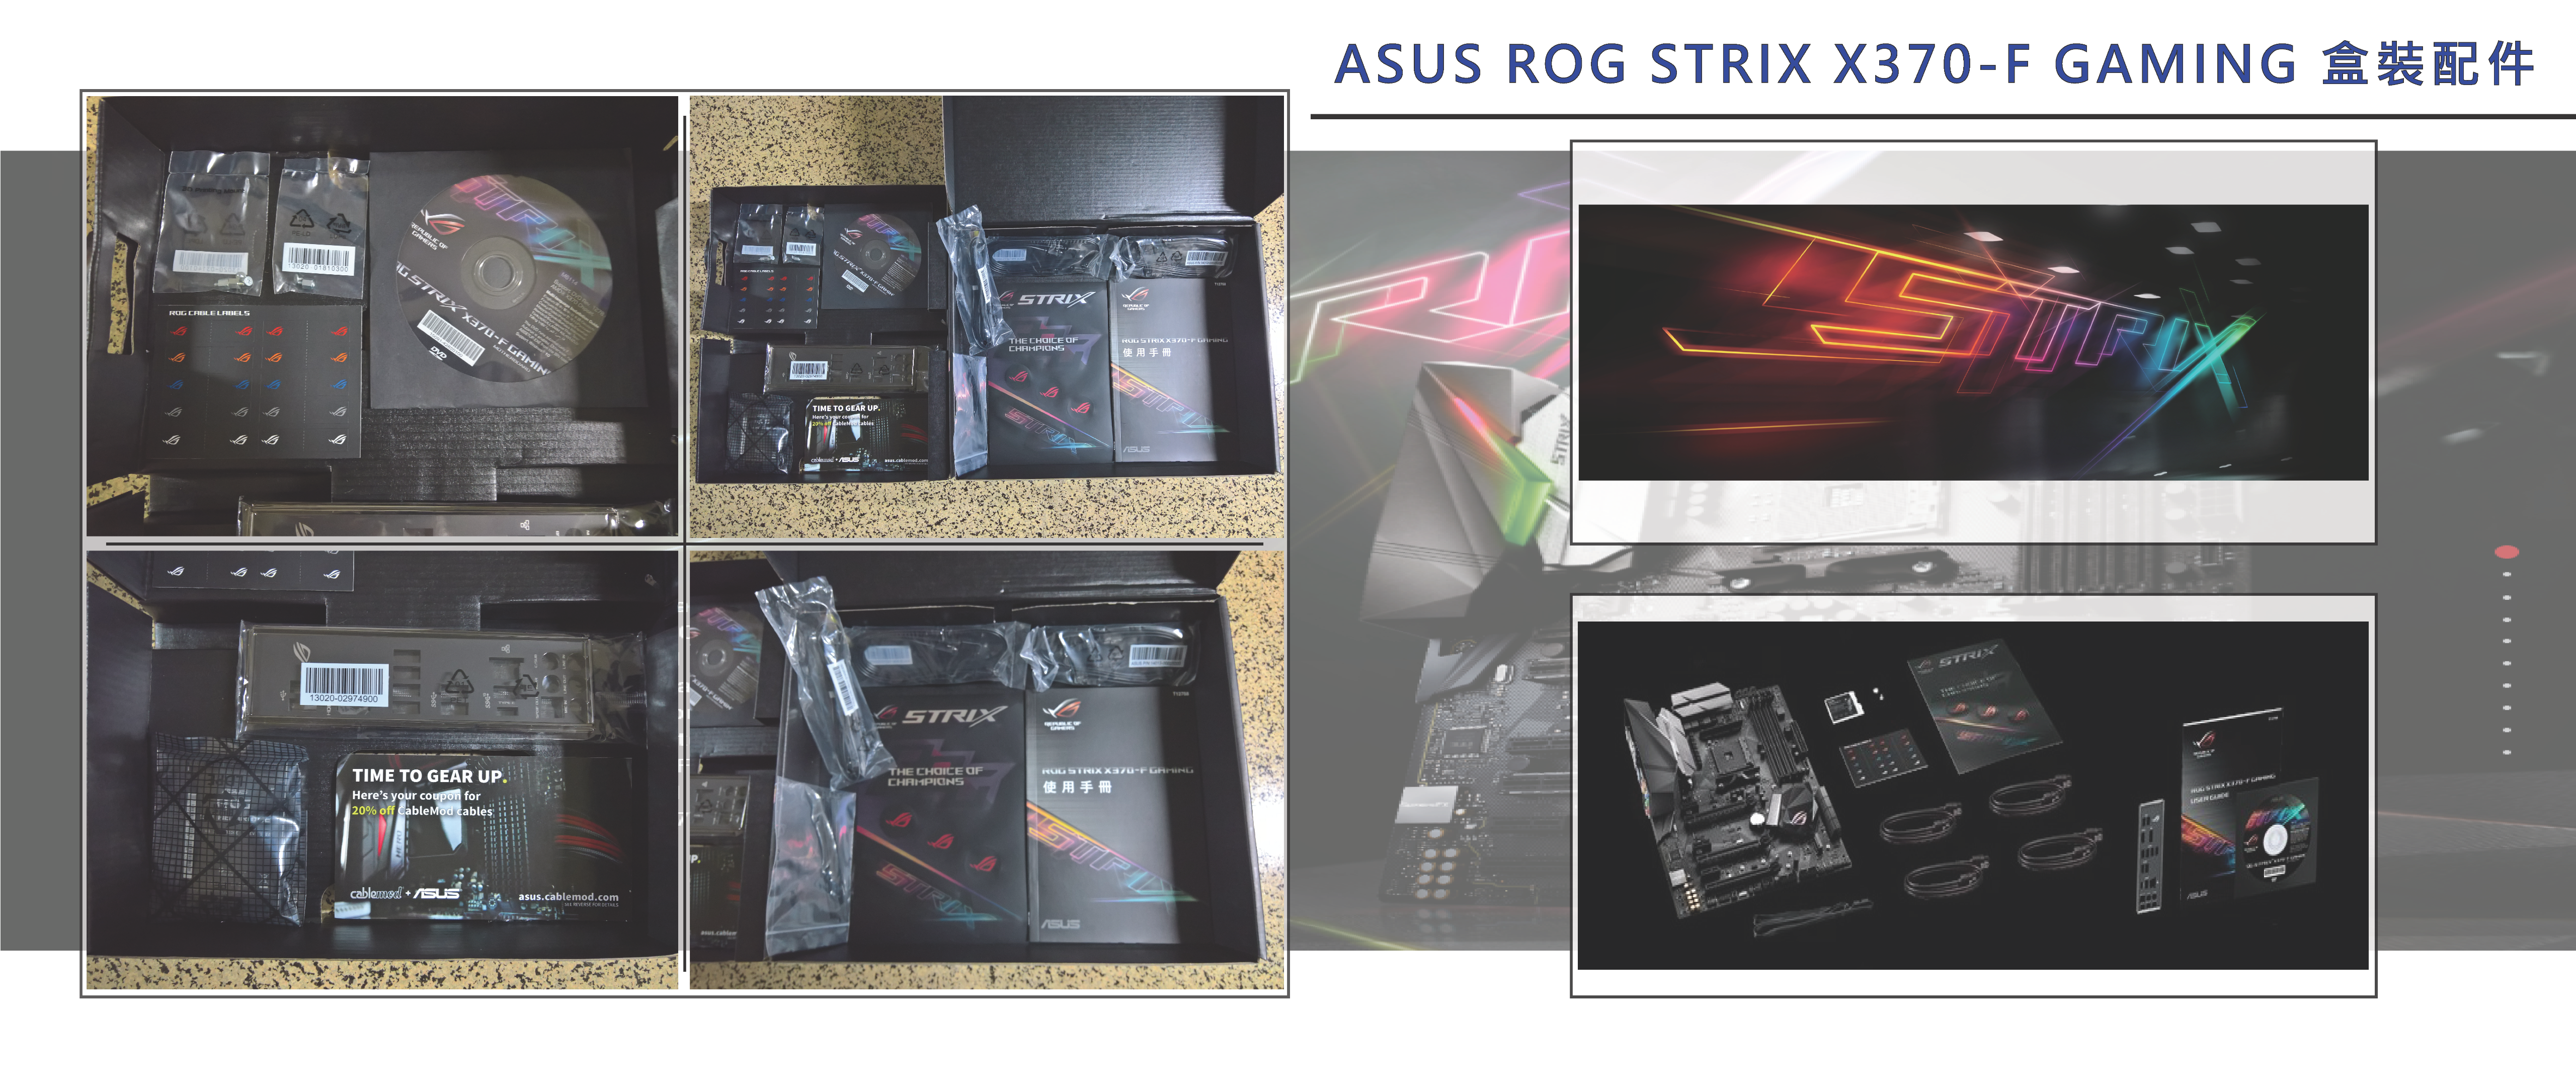 AMD RYZEN 5 1600 & ASUS ROG STRIX X370-F GAMING & AMD RADEON R9 NANOx2 CROSSFIREX TEST - XFastest - ASUS ROG STRIX X370-F GAMING 盒裝配件